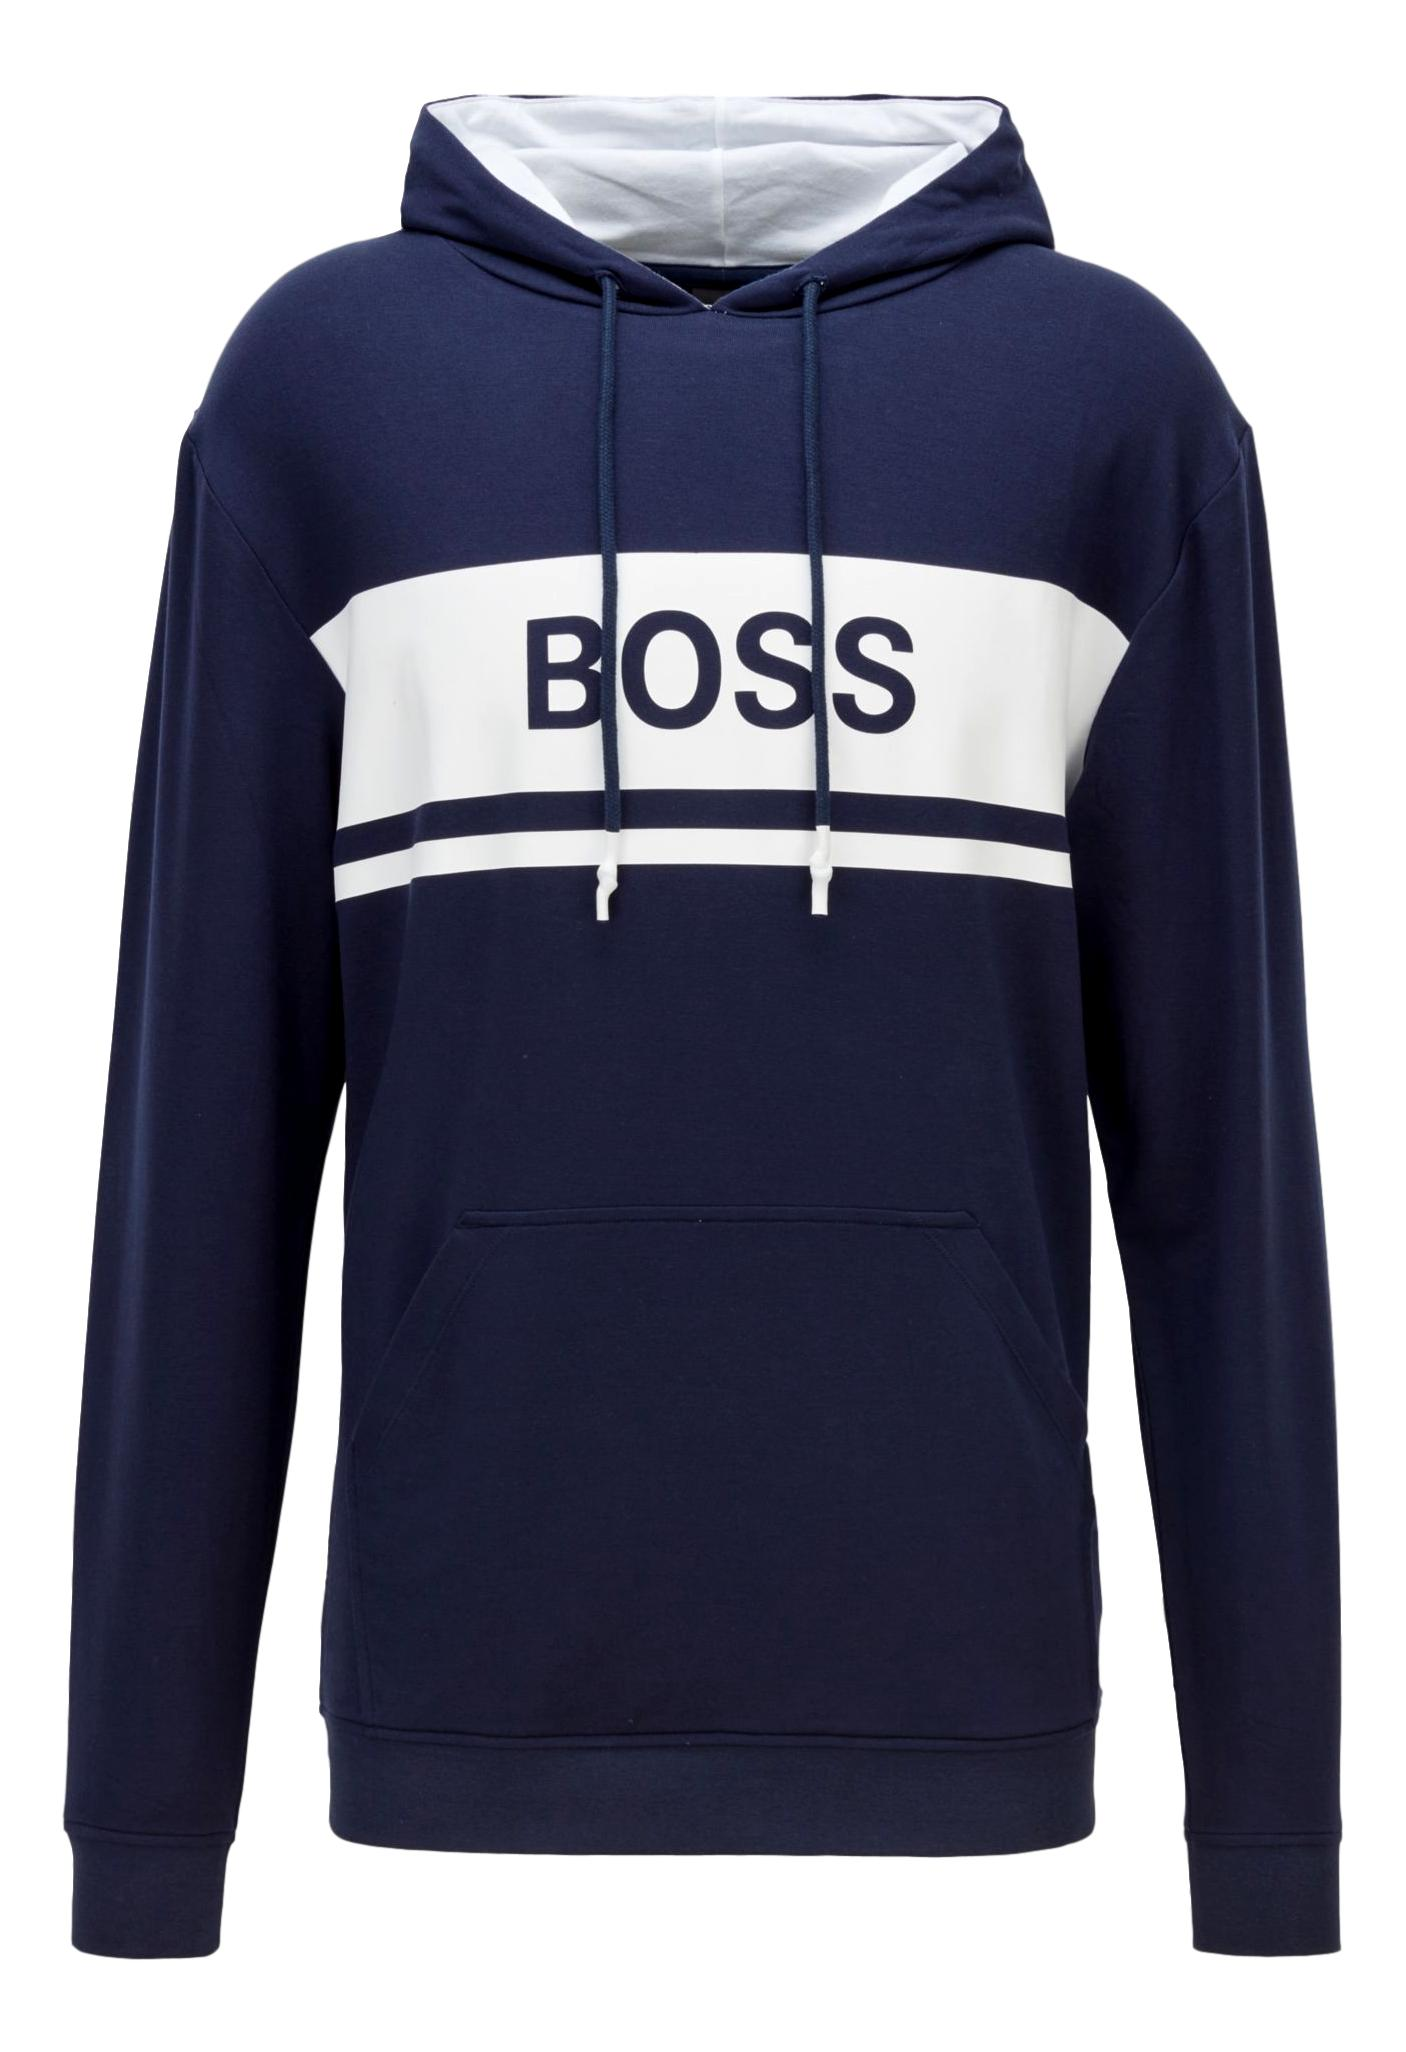 HUGO BOSS Logo hoodie lightweight French terry Style Fashion Sweatshirt 50436860